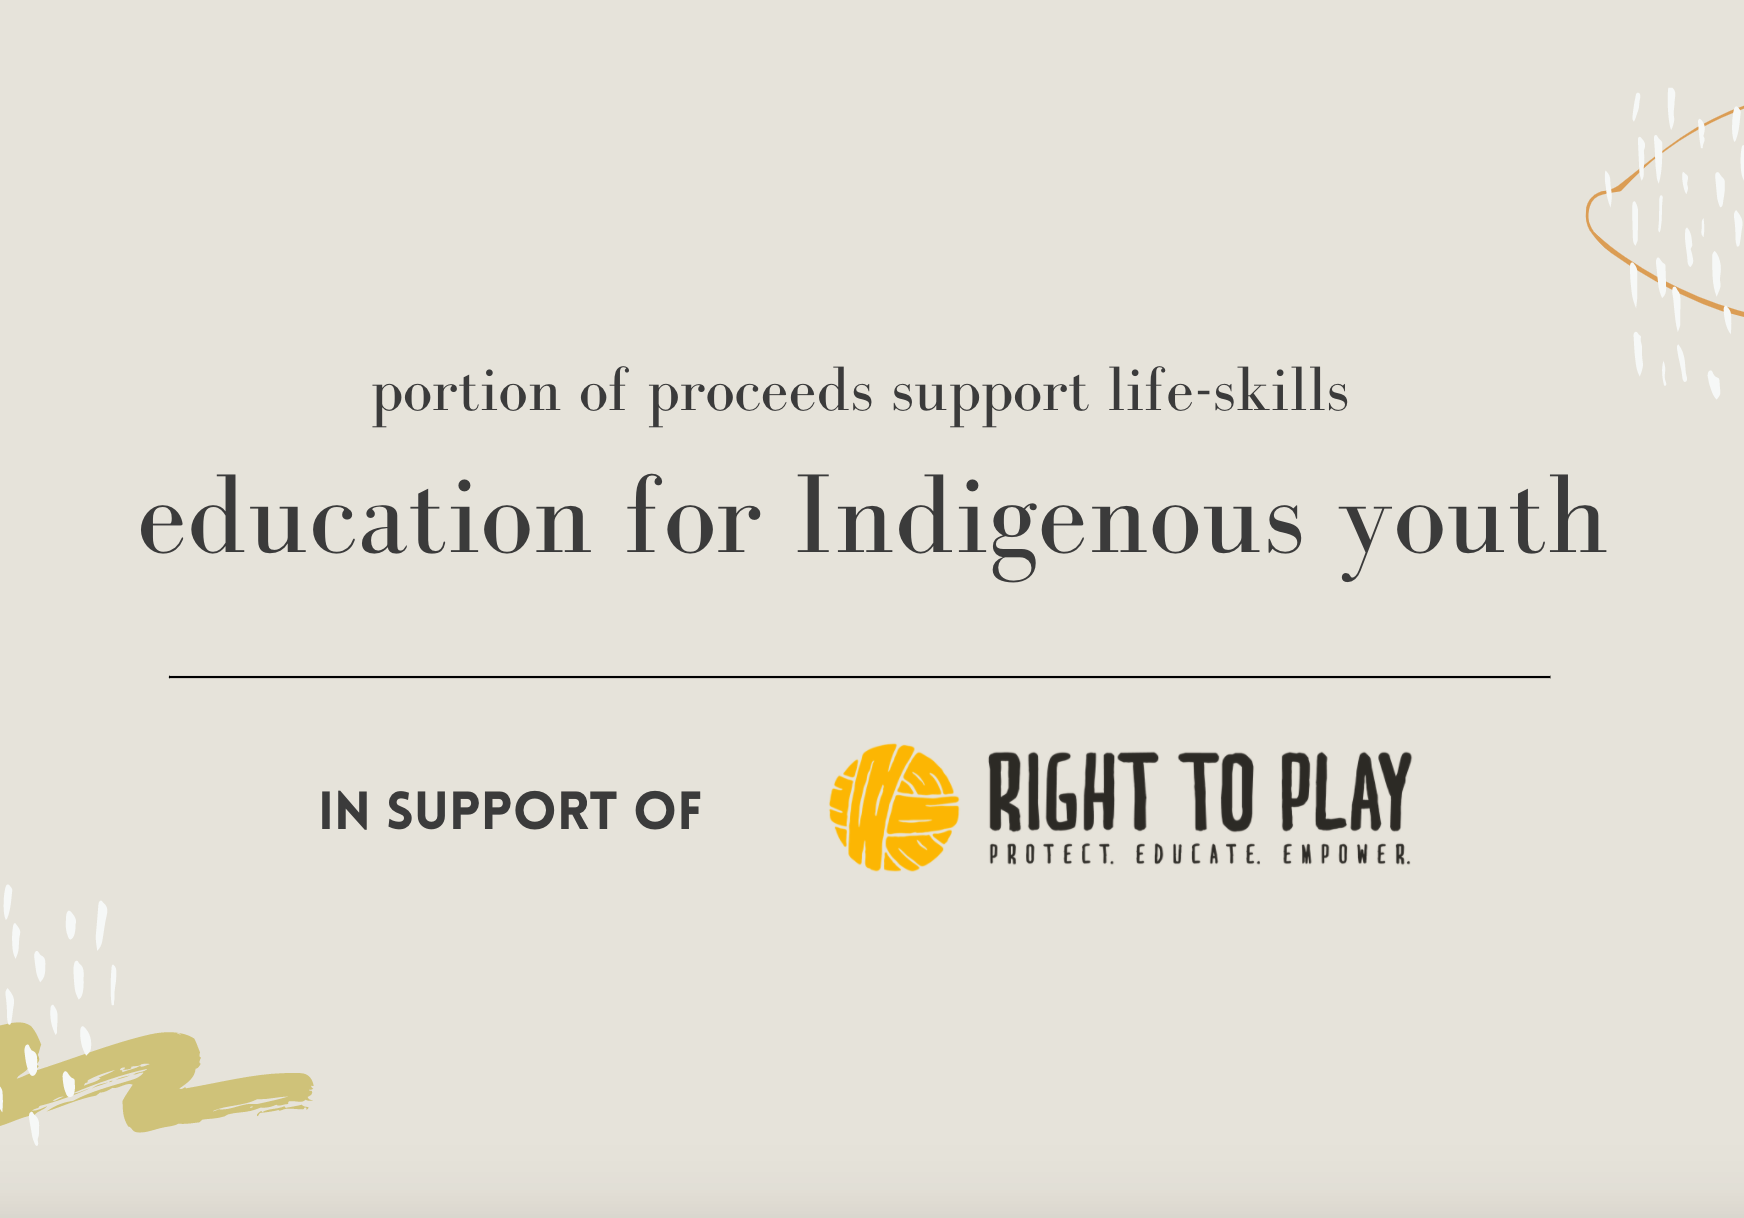 portion of proceeds support life-skills education for Indigenous youth